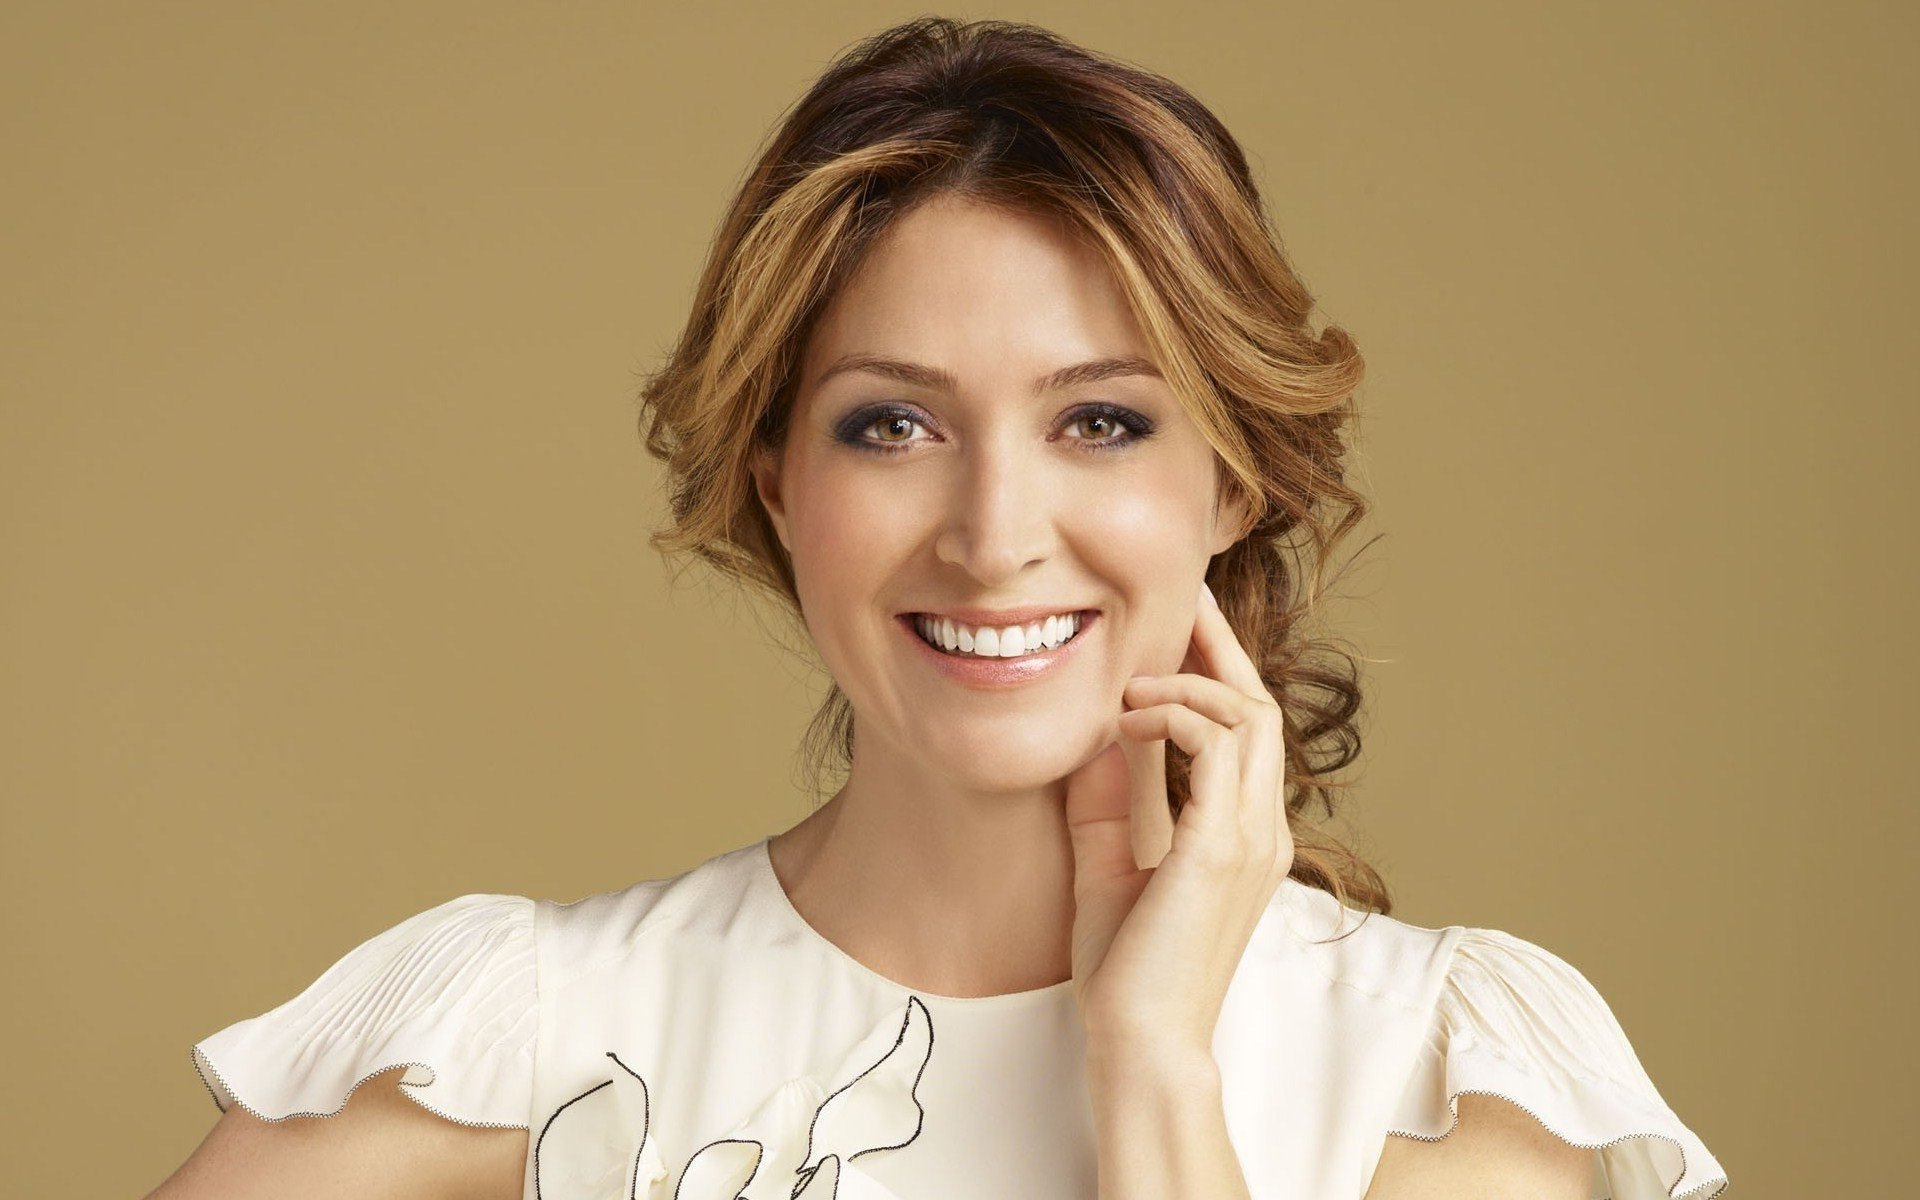 Download this Sasha Alexander picture